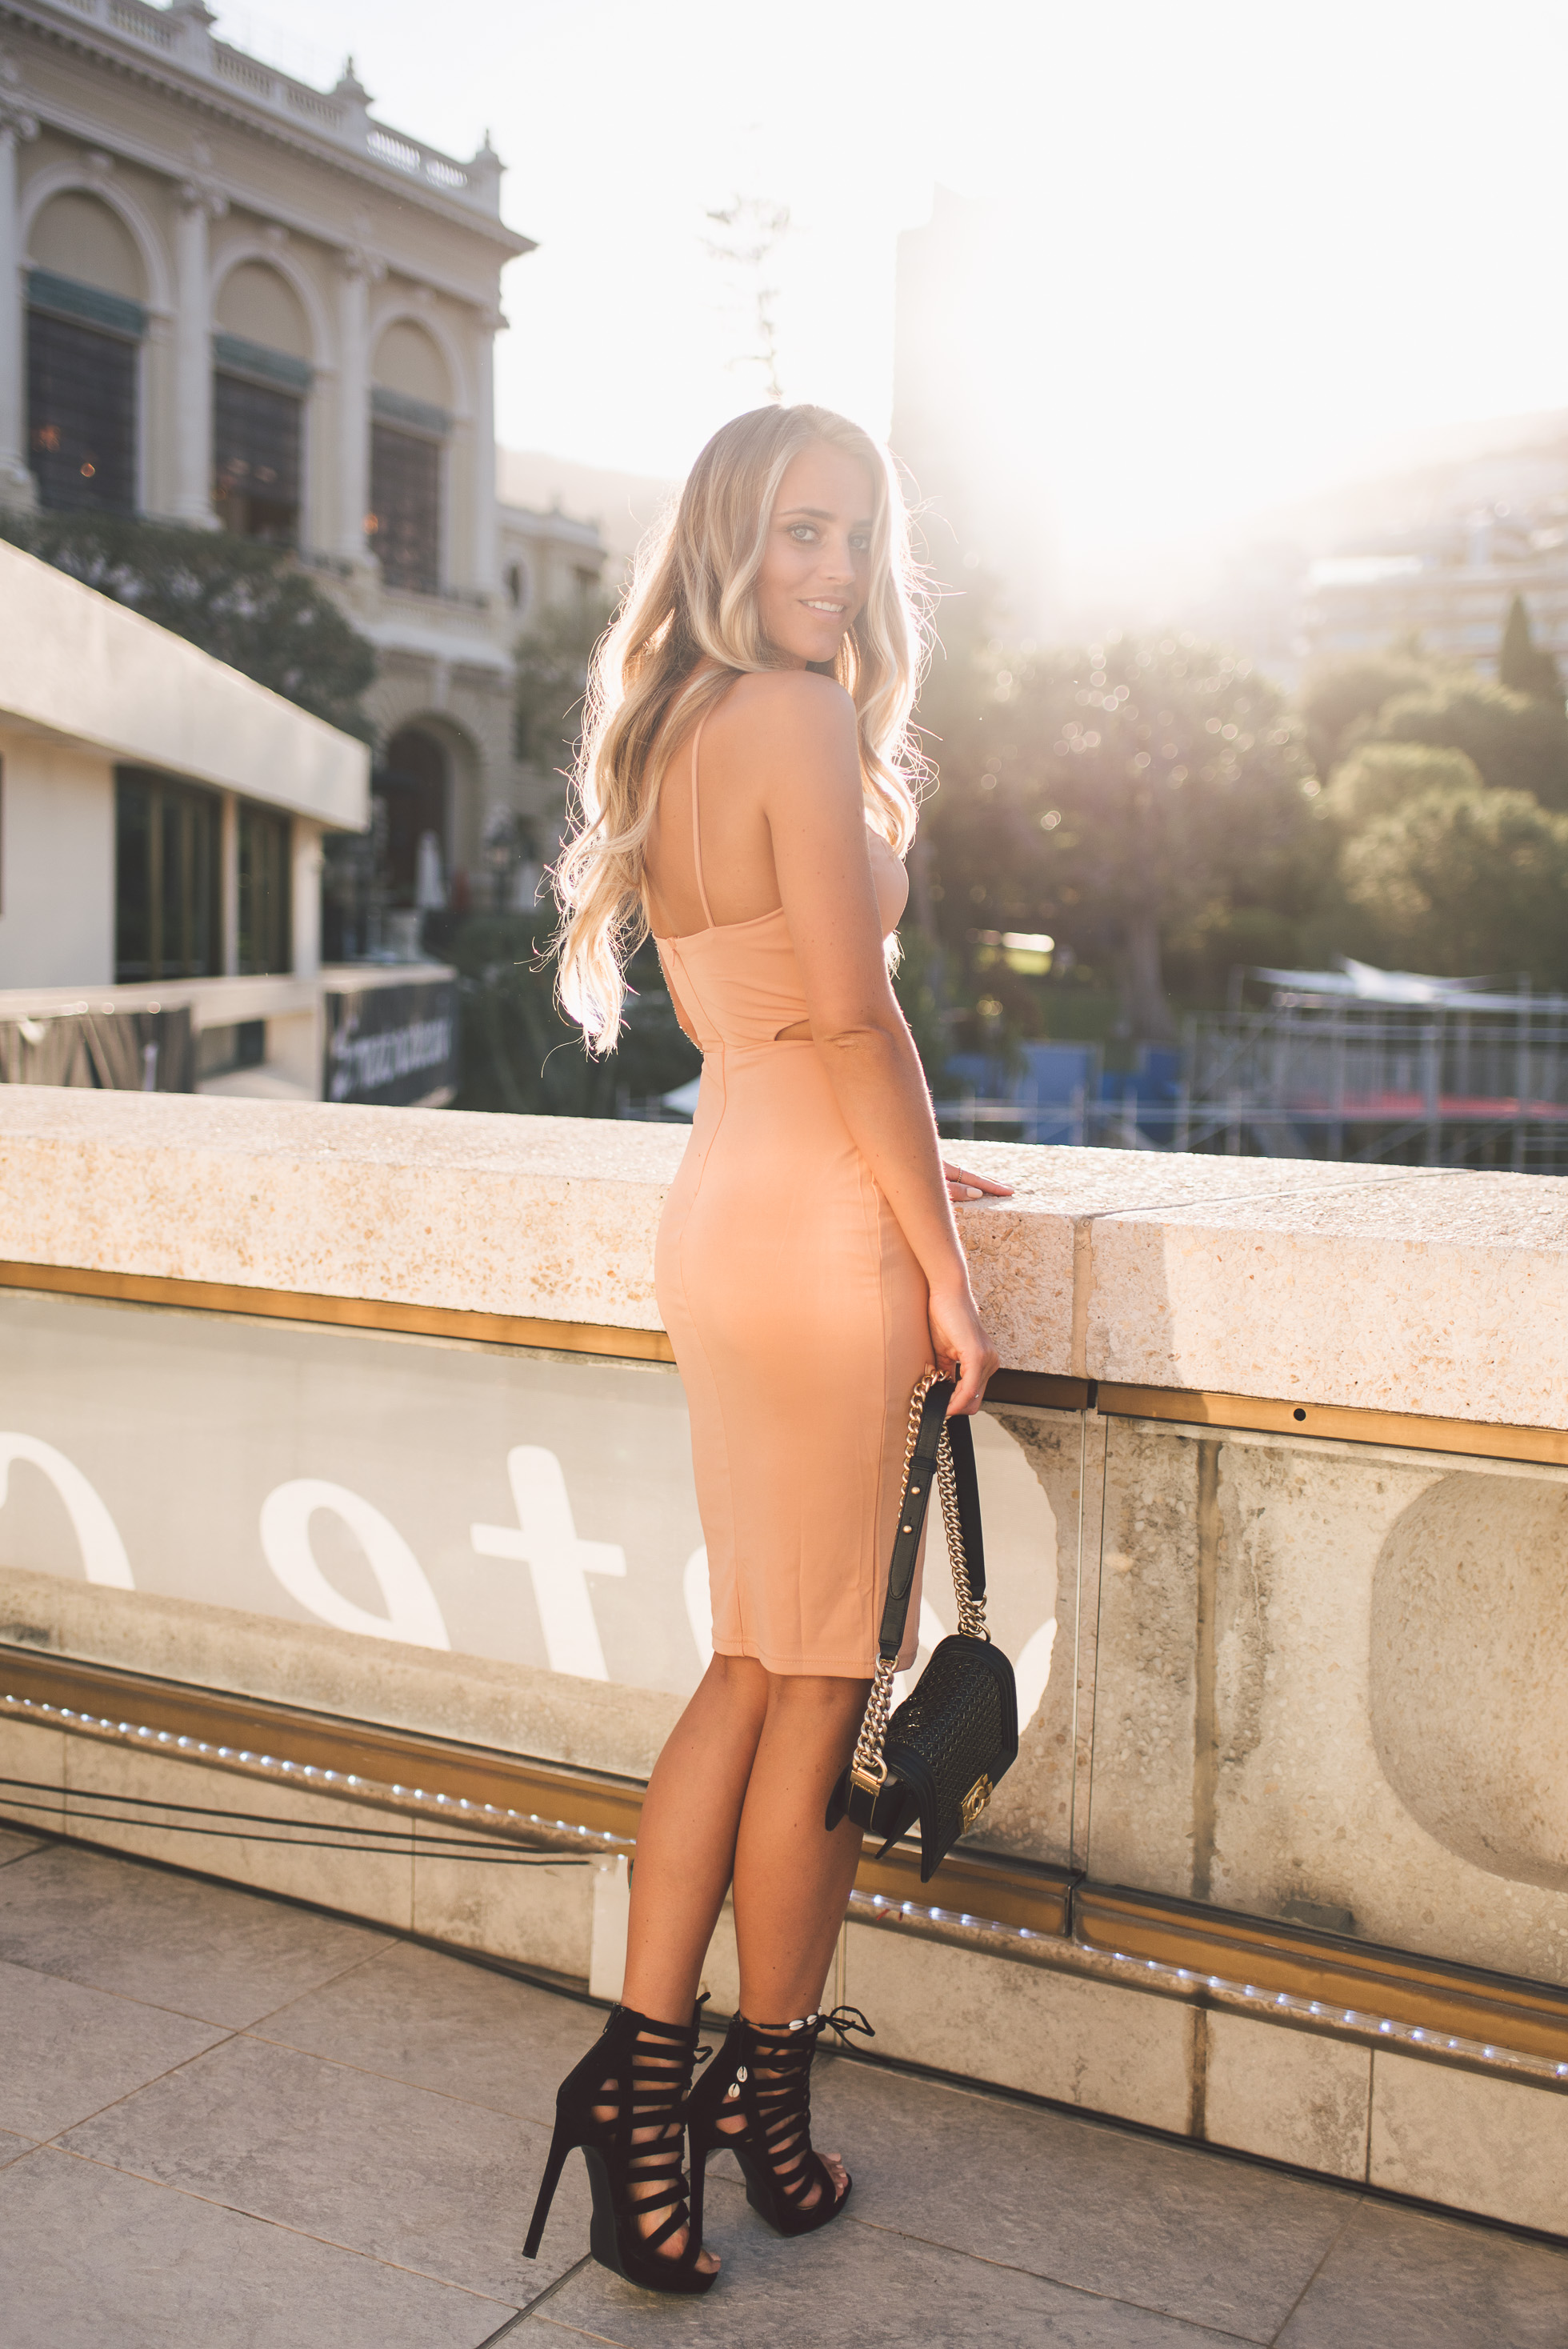 The perfect way to show off your summer body is to wear a bodycon dress like Janni Deler. The pastel pink colour is really complimentary, and paired with high heels and a simple bag creates the ultimate outfit for a more sophisticated occasion. Dress: Chiquelle, Bag: Chanel, Shoes: Public Desire